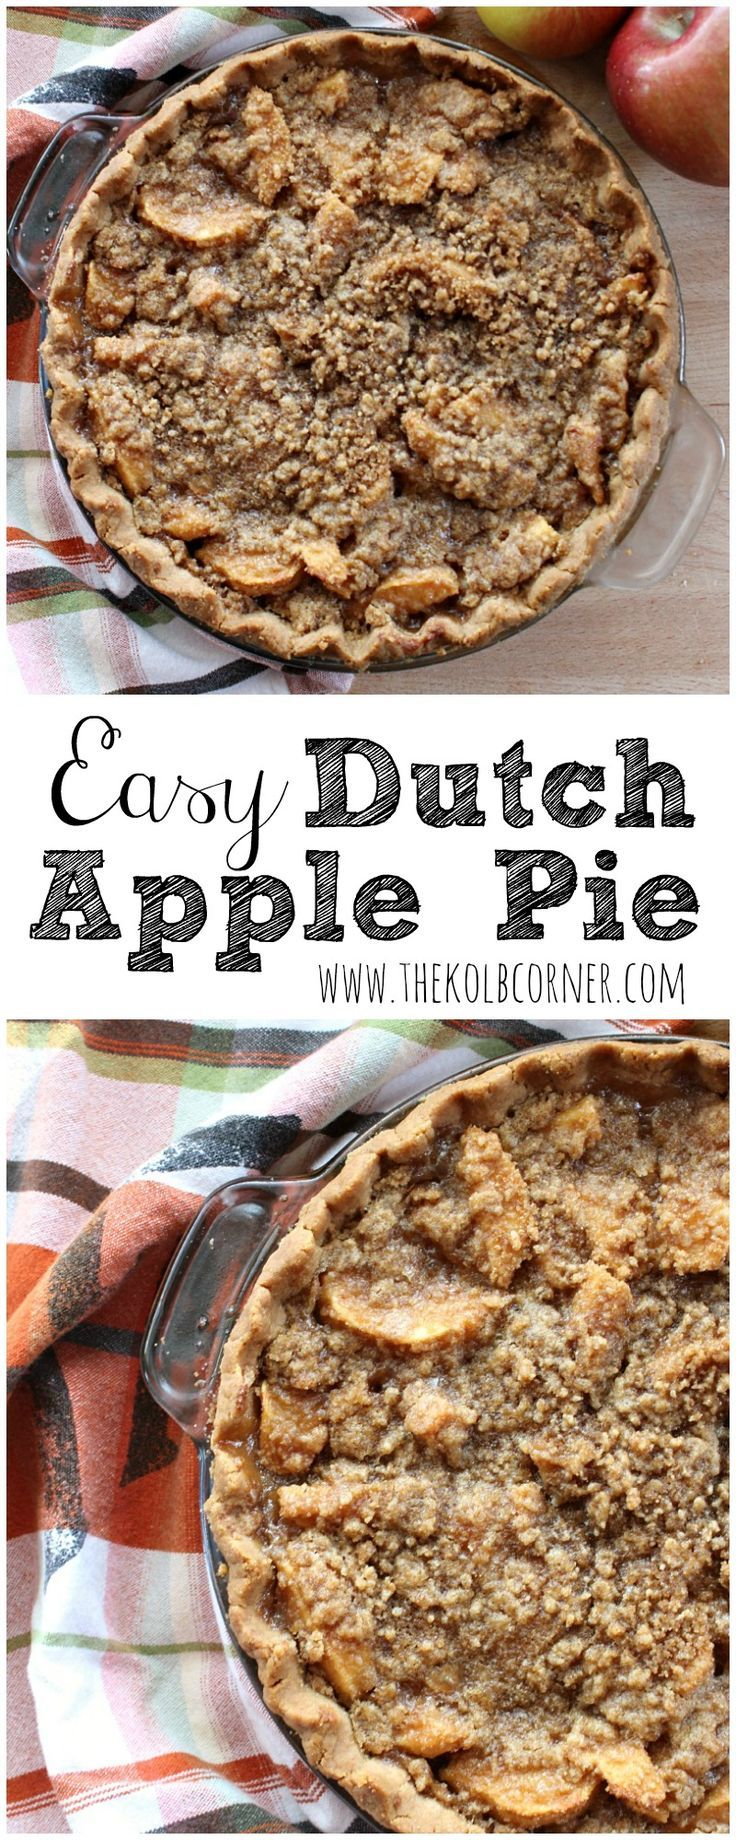 Easy Dutch Apple Pie - I'm down for an easy dessert recipe. Can't wait to try this apple pie.